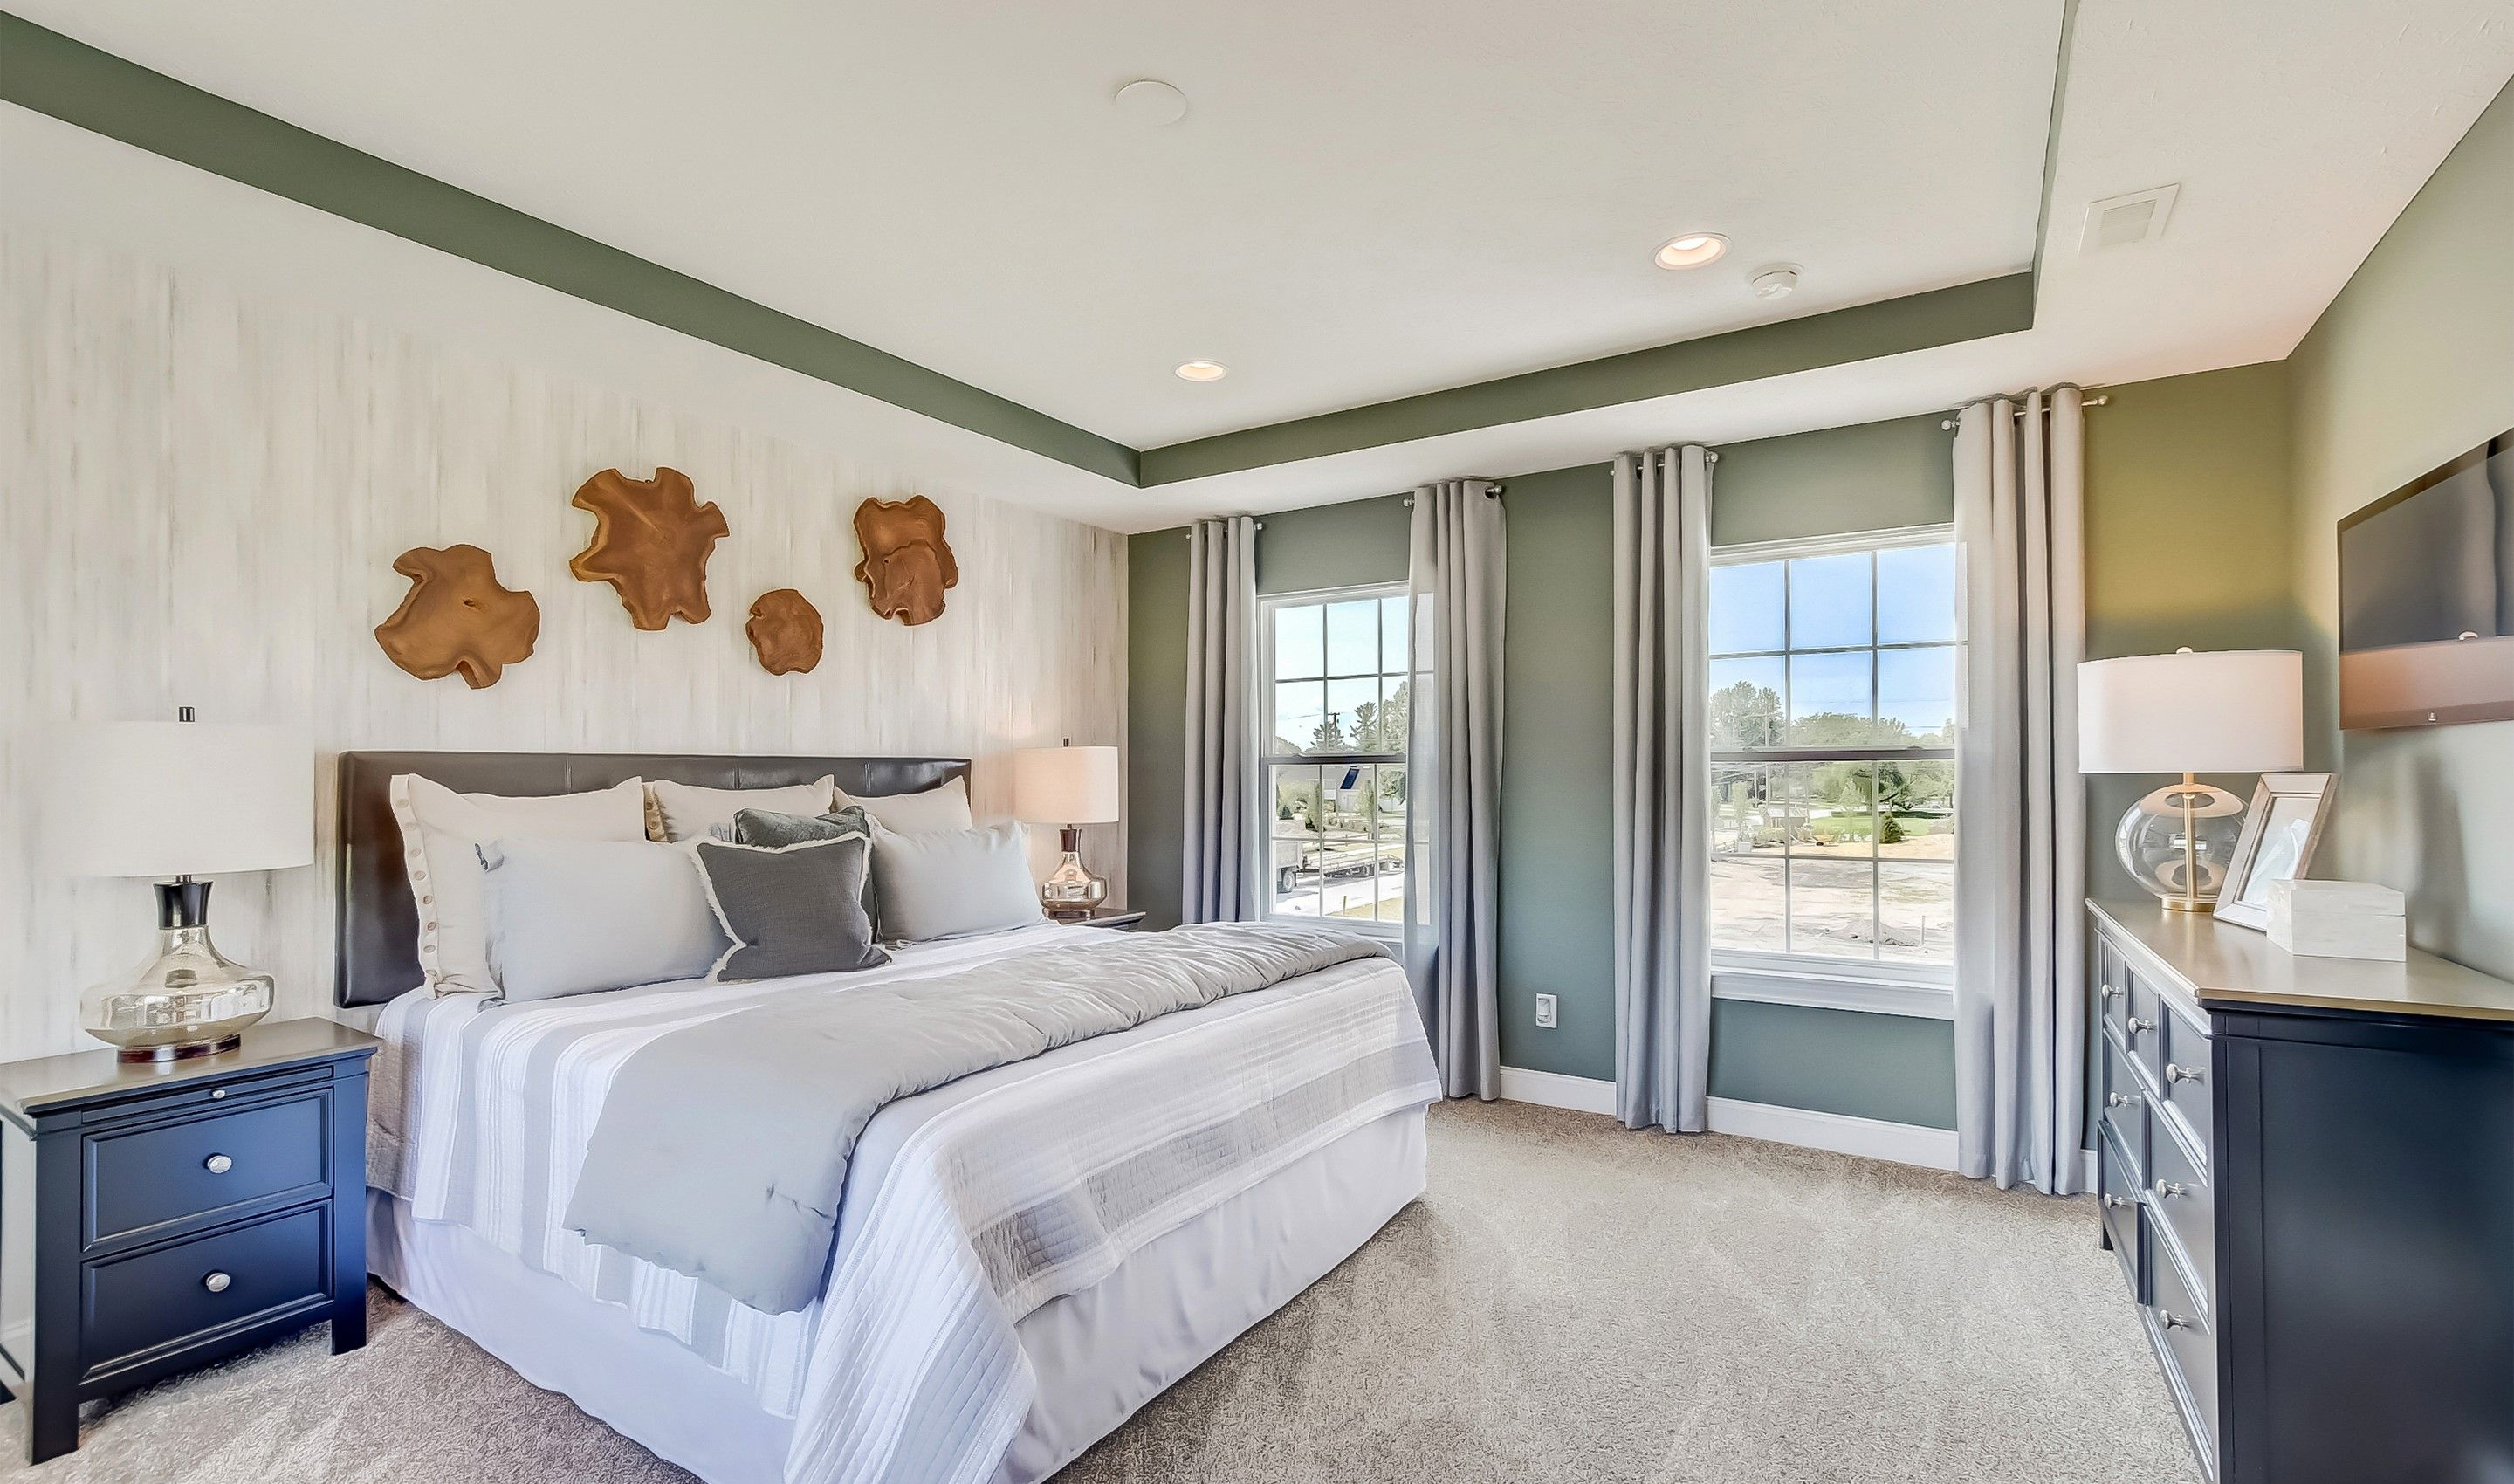 Bedroom featured in the Waterford II By K. Hovnanian® Homes in Chicago, IL